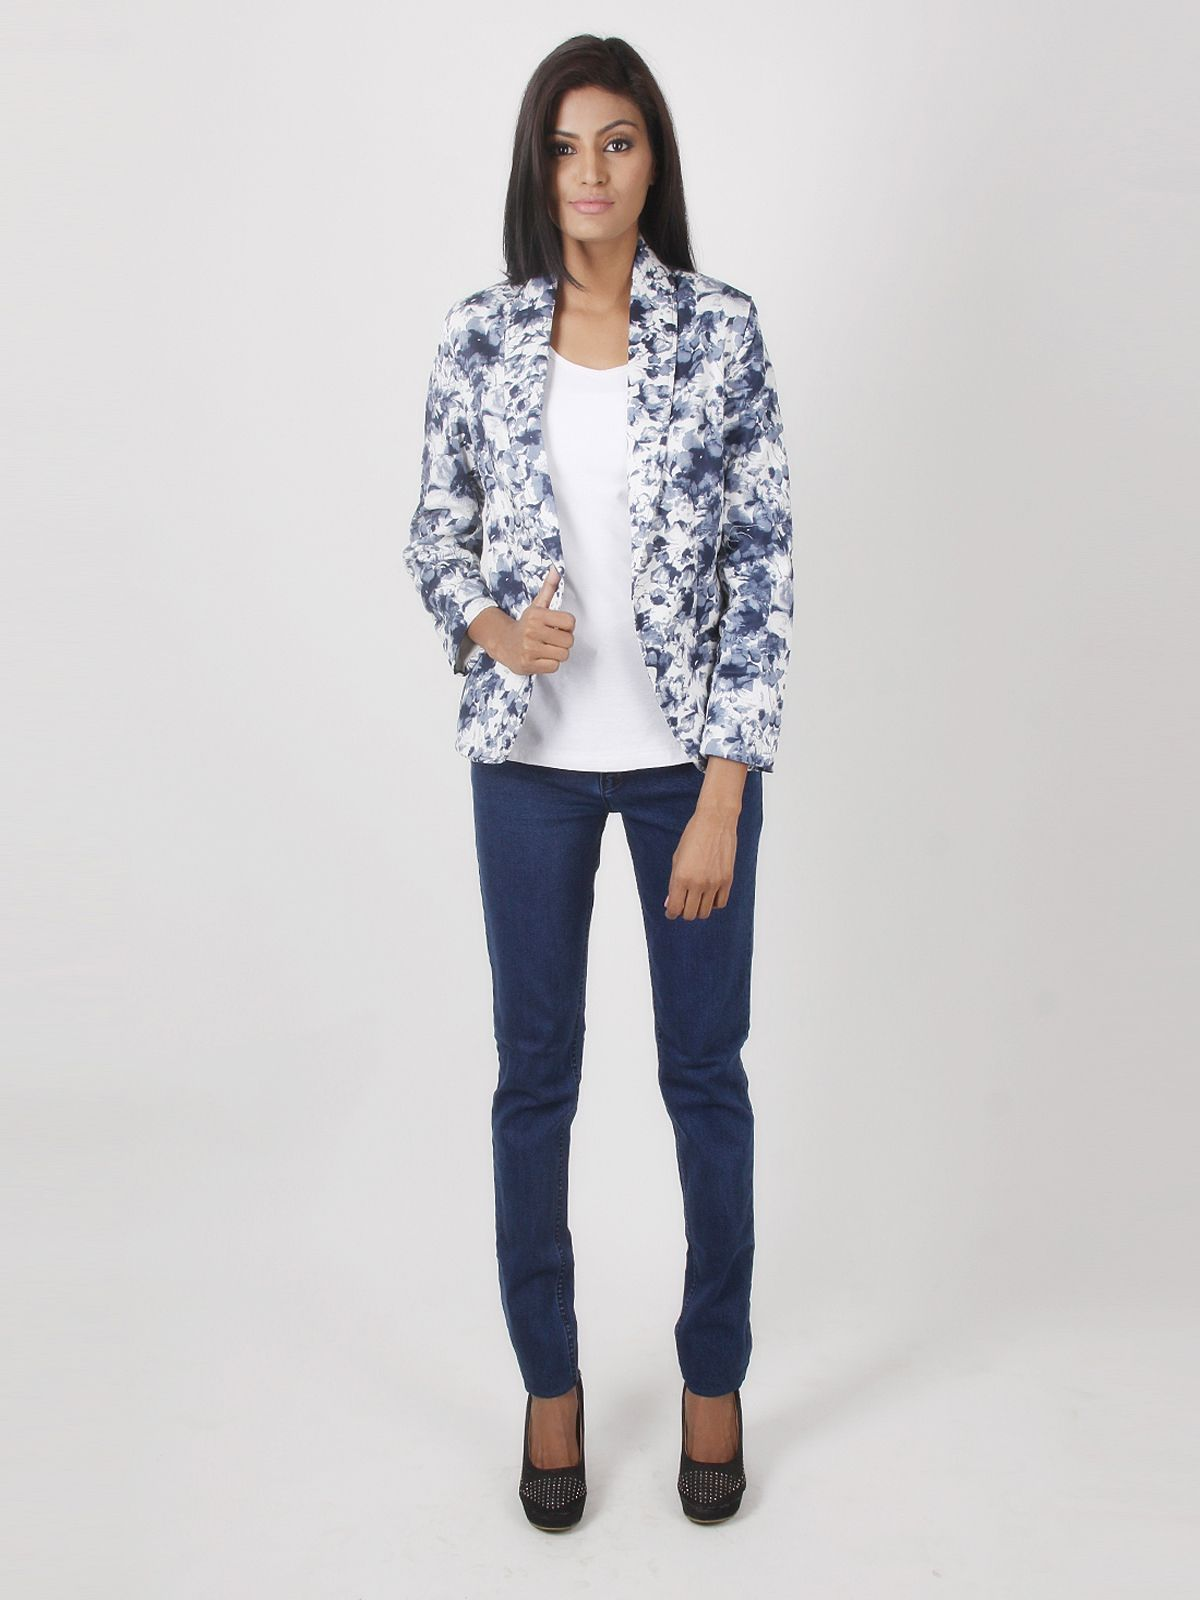 2b454cca6e802 casual jackets for women - Google Search